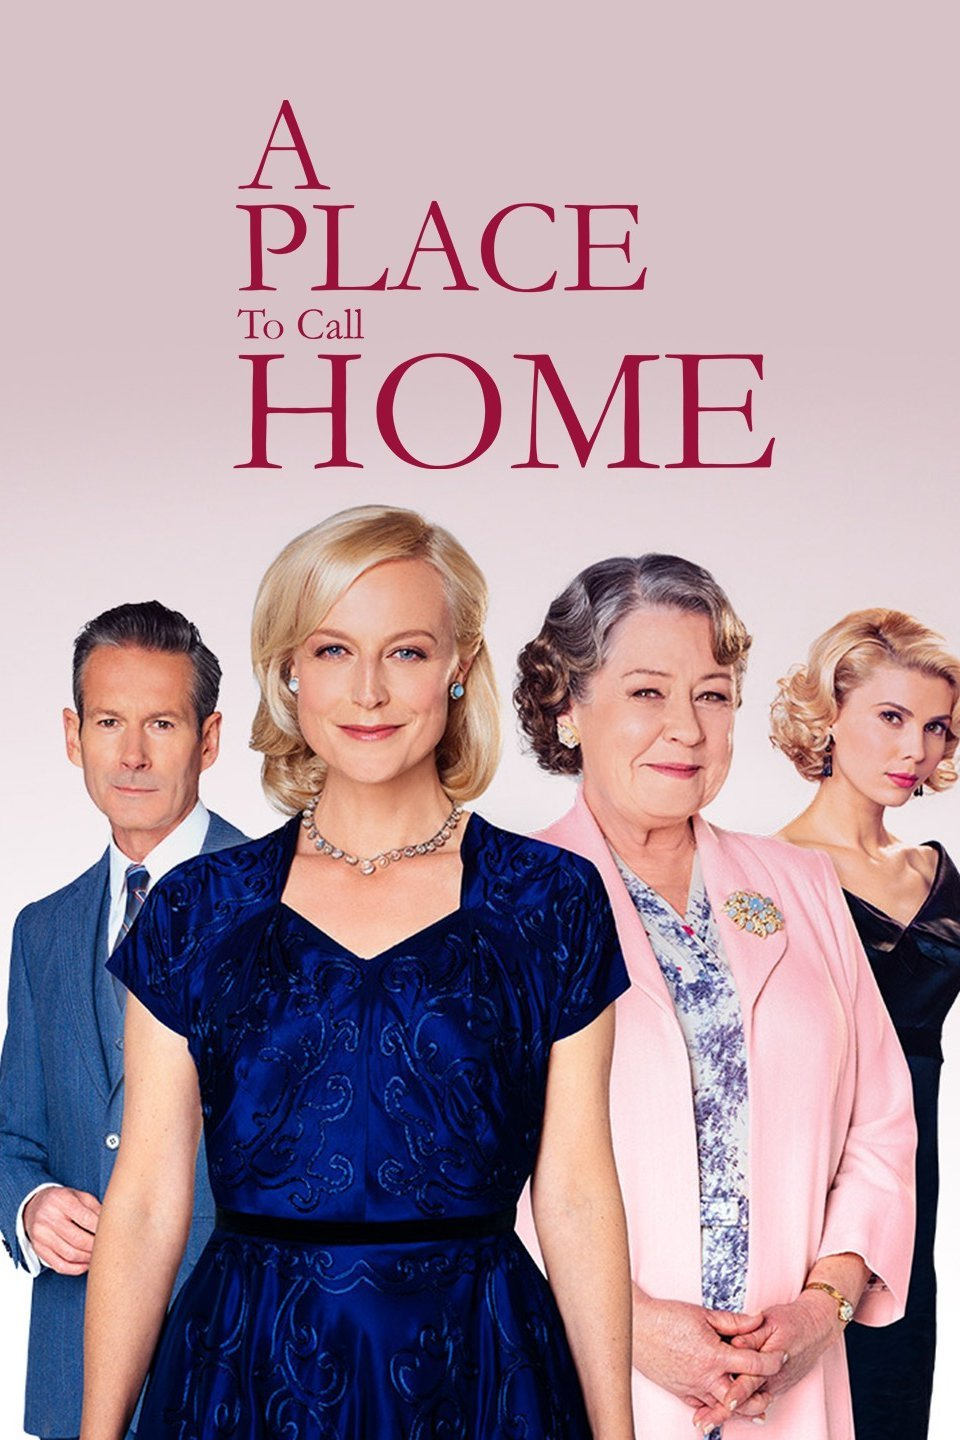 APlaceToCallHome.jpg